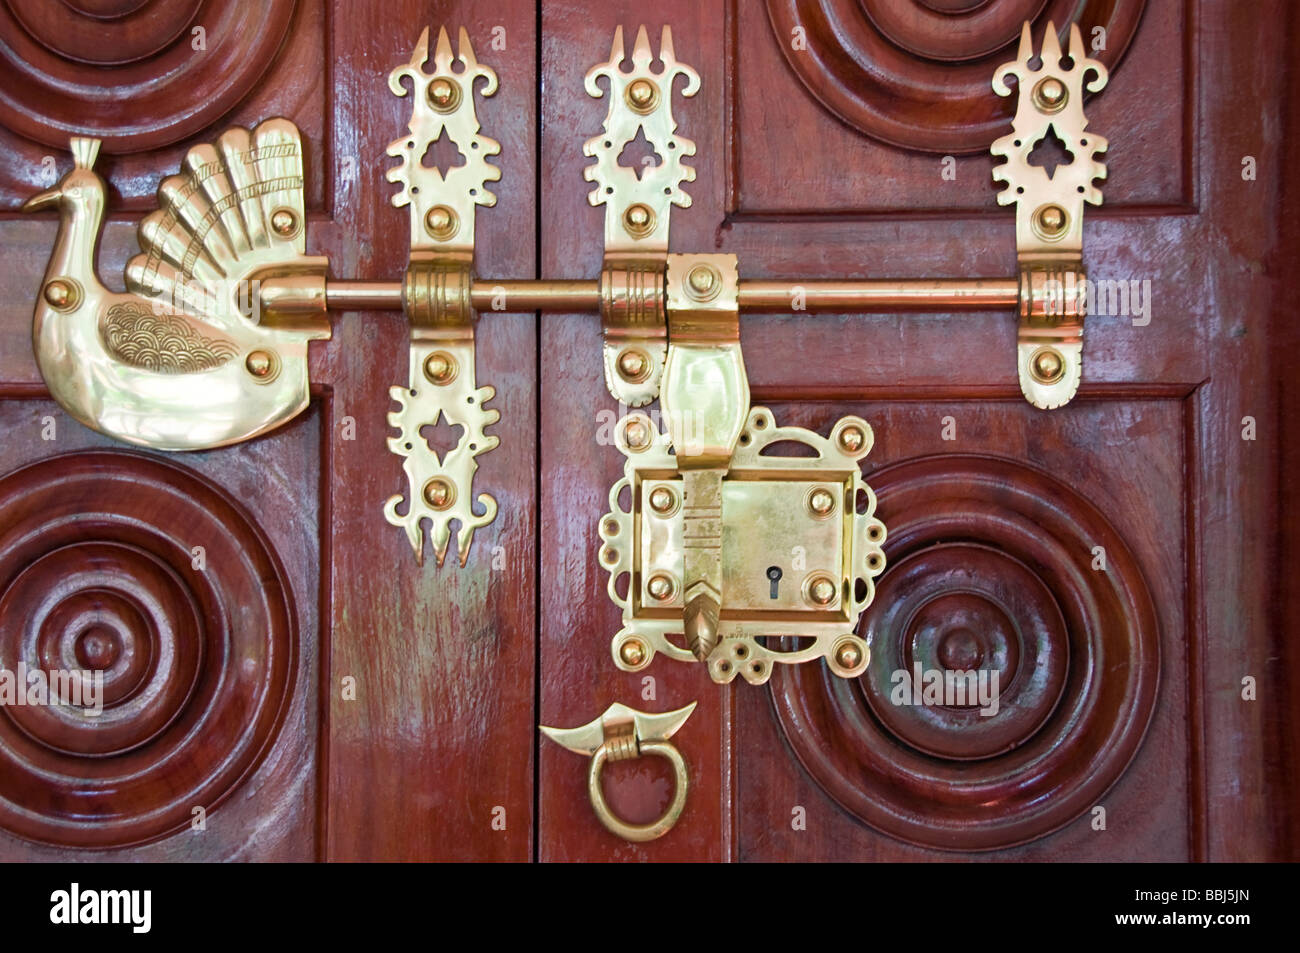 Antique Traditional Brass Door Latch And Lock On Wooden Doors, Kerala India    Stock Image